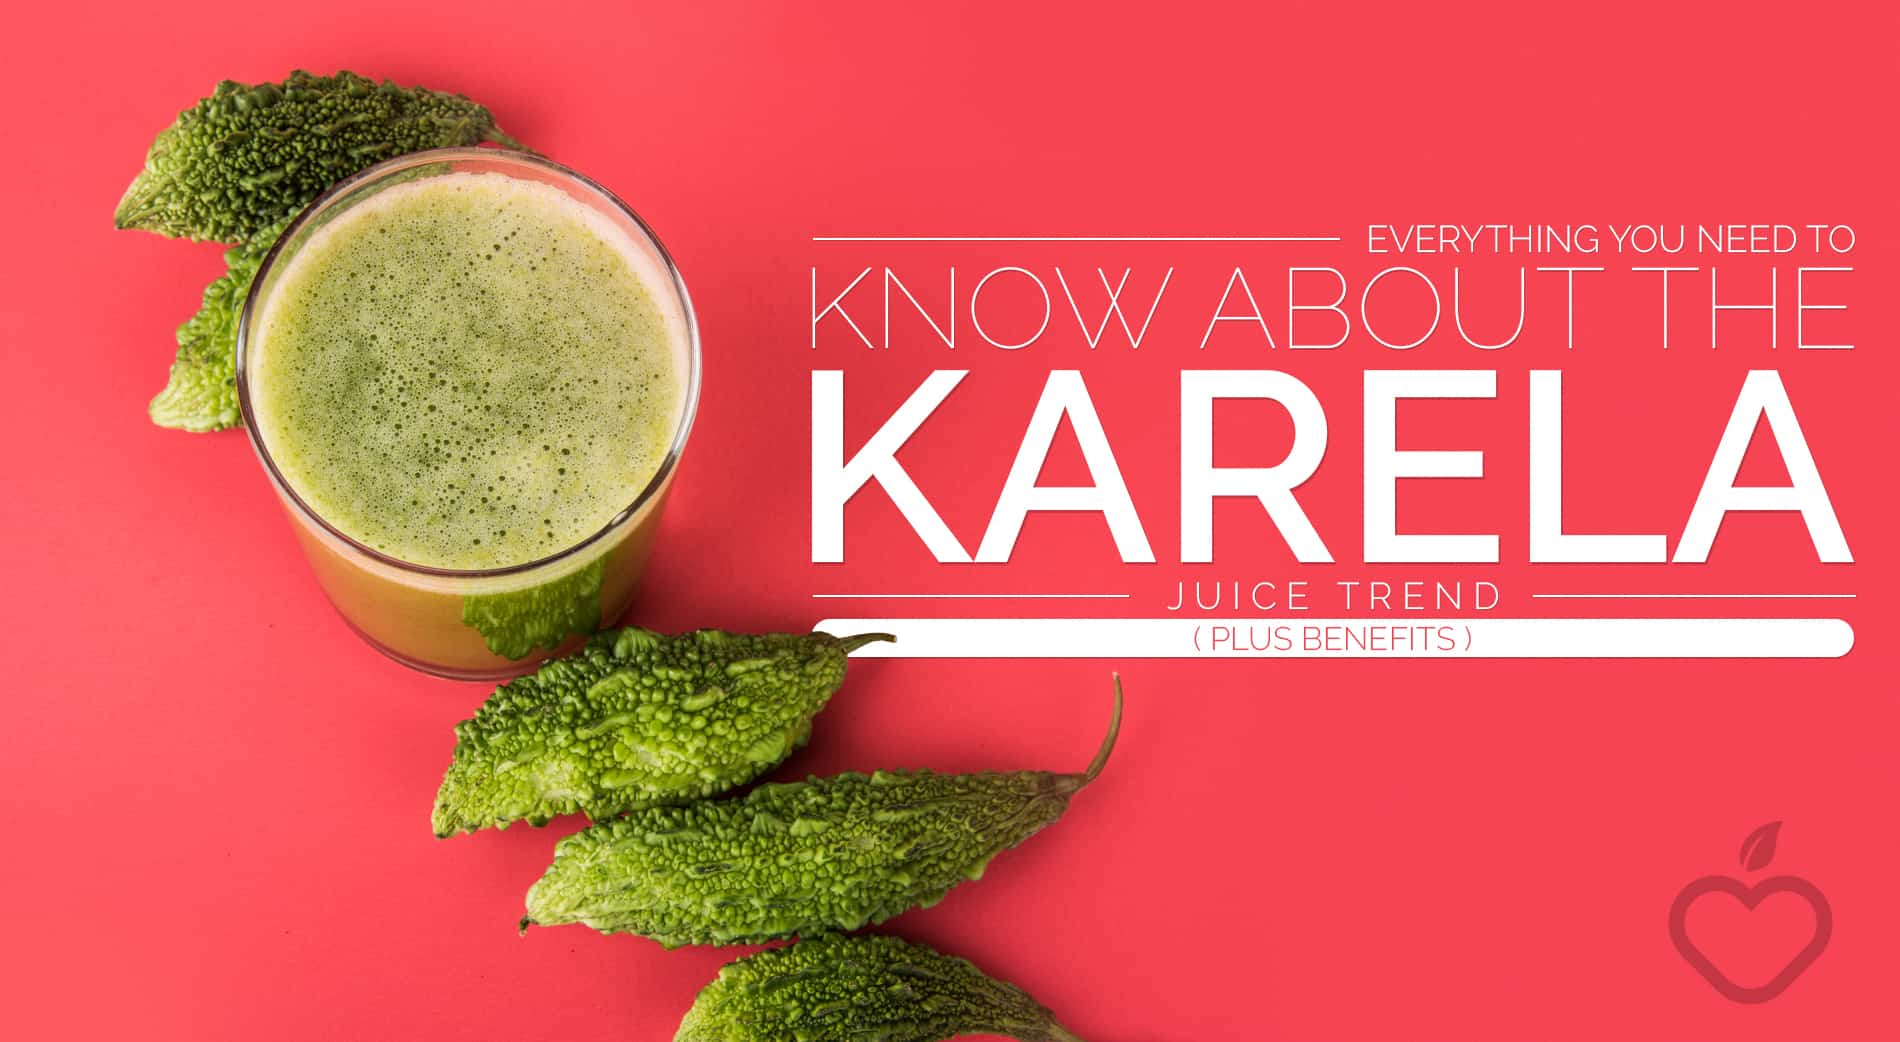 Karela Juice Trend Image Design 1 - Everything You Need to Know About the Karela Juice Trend (Plus Benefits)